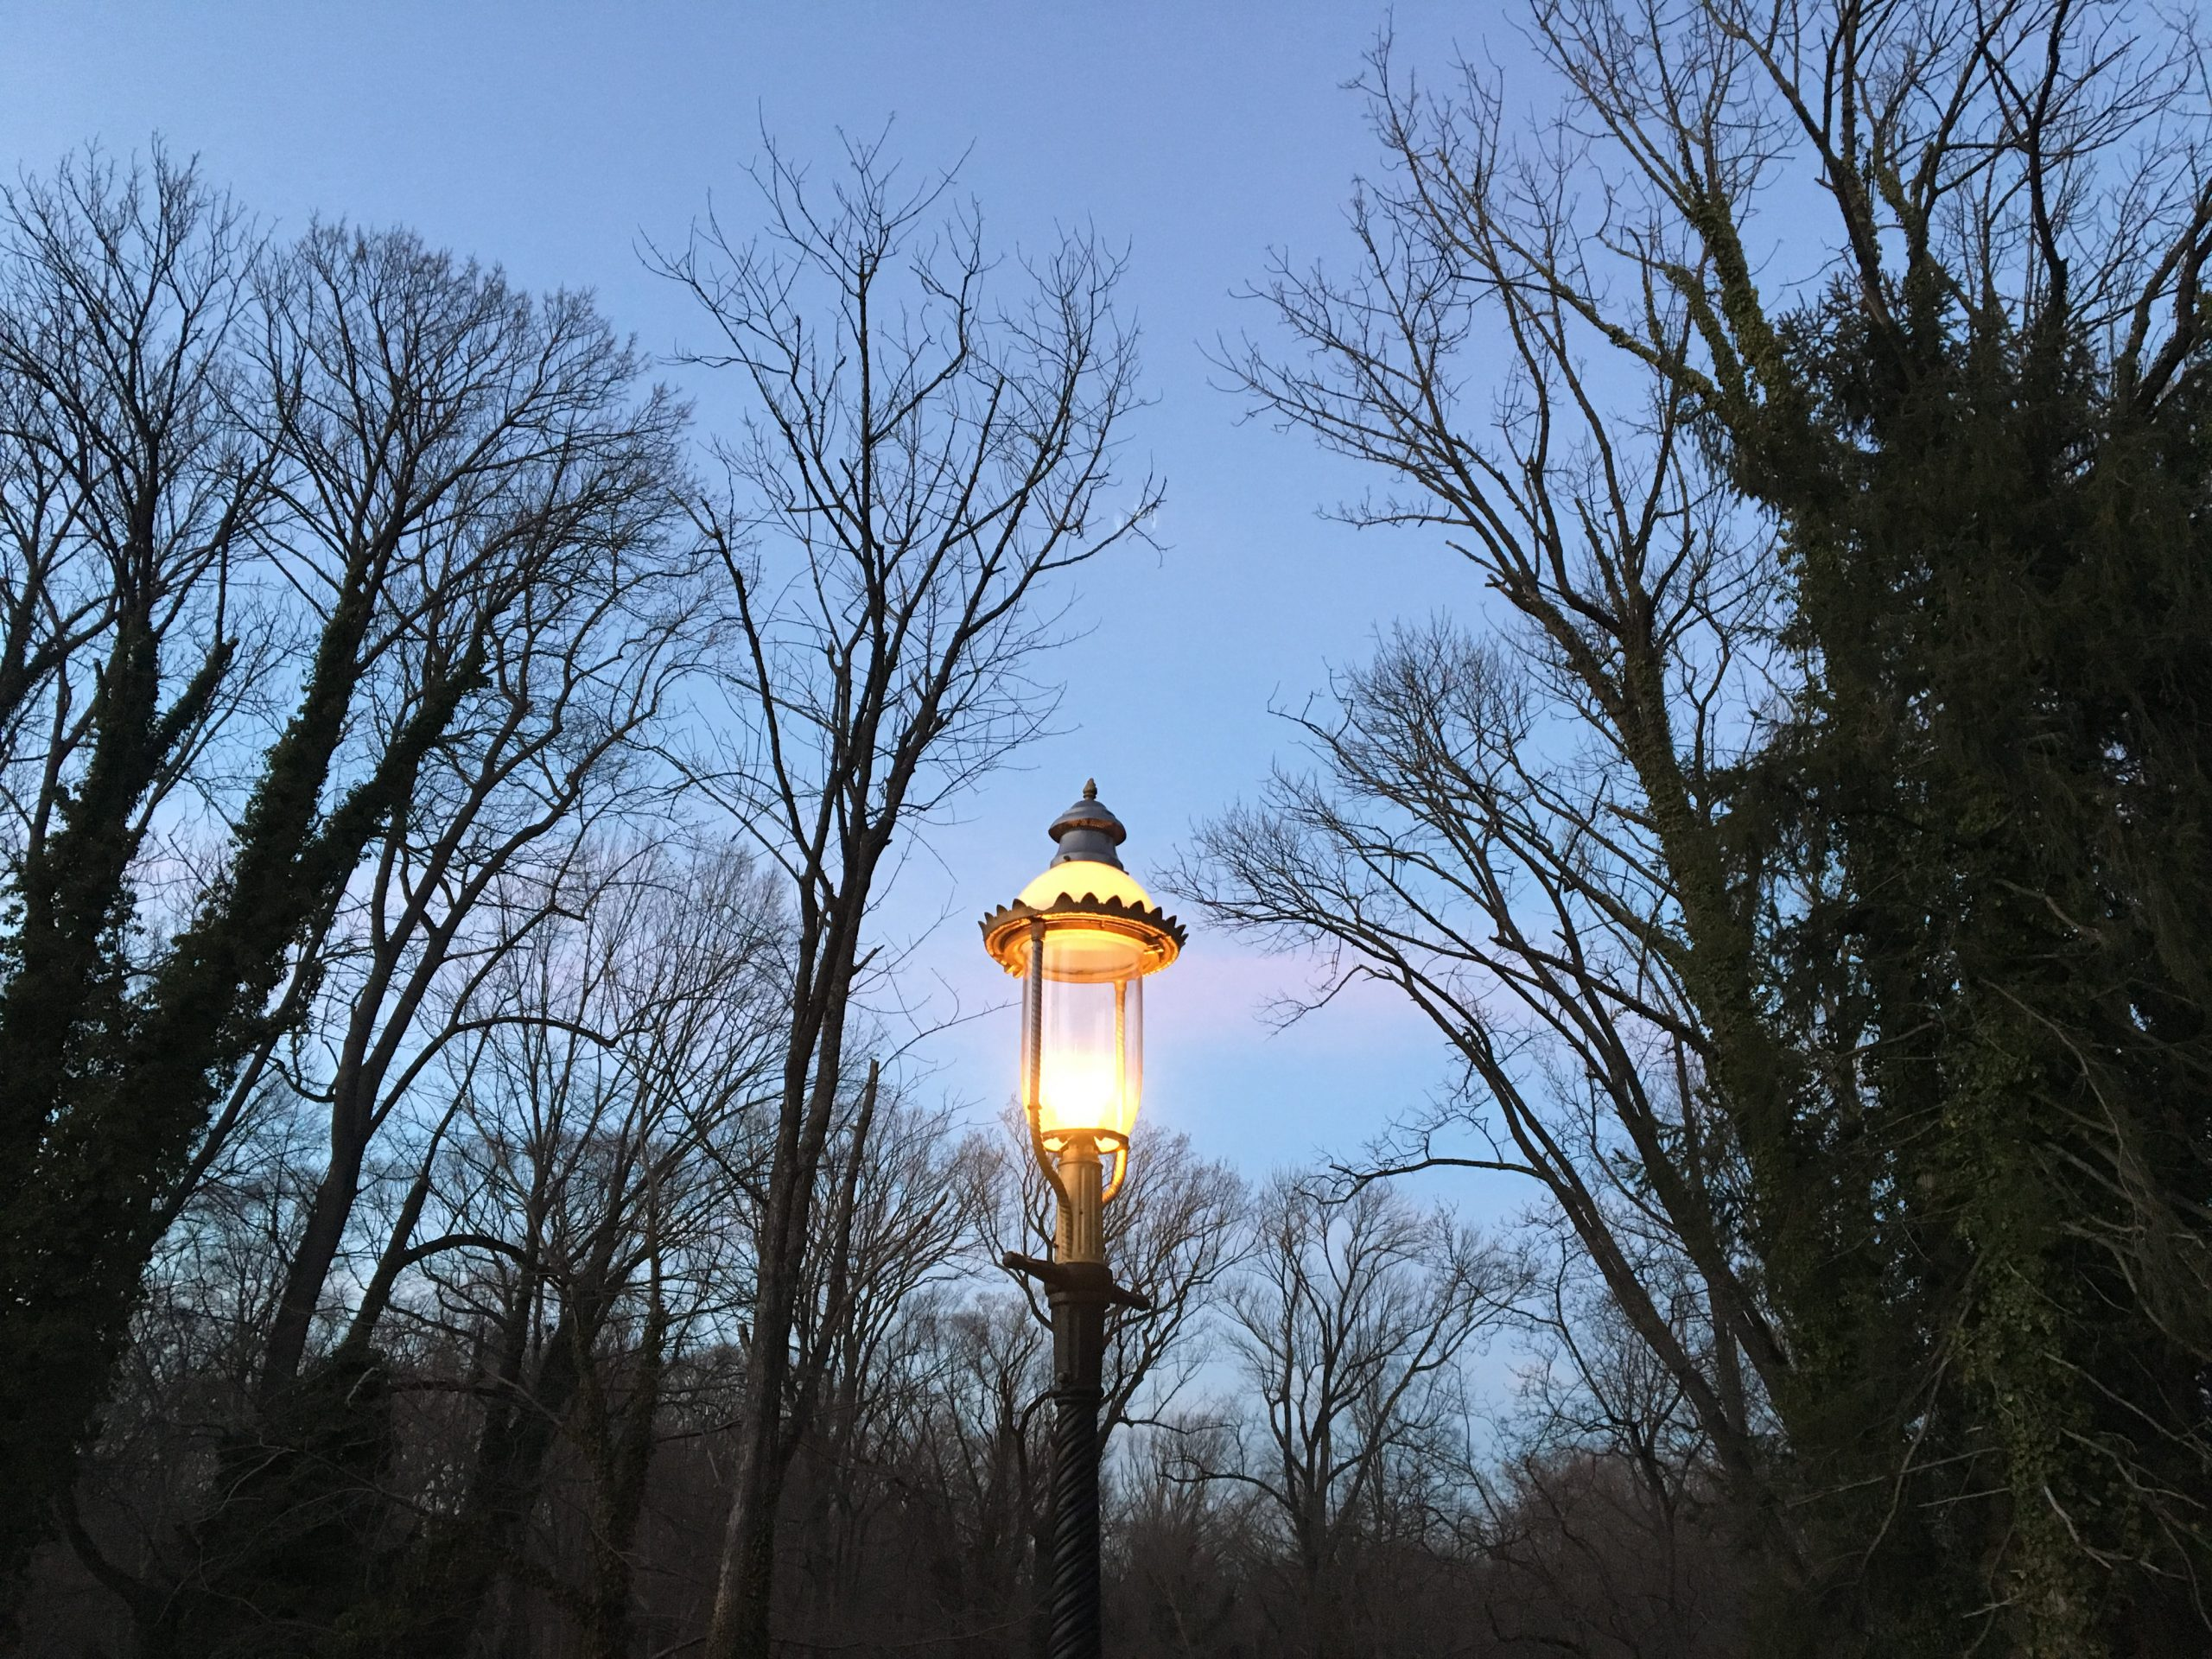 streetlamp, winter dusk